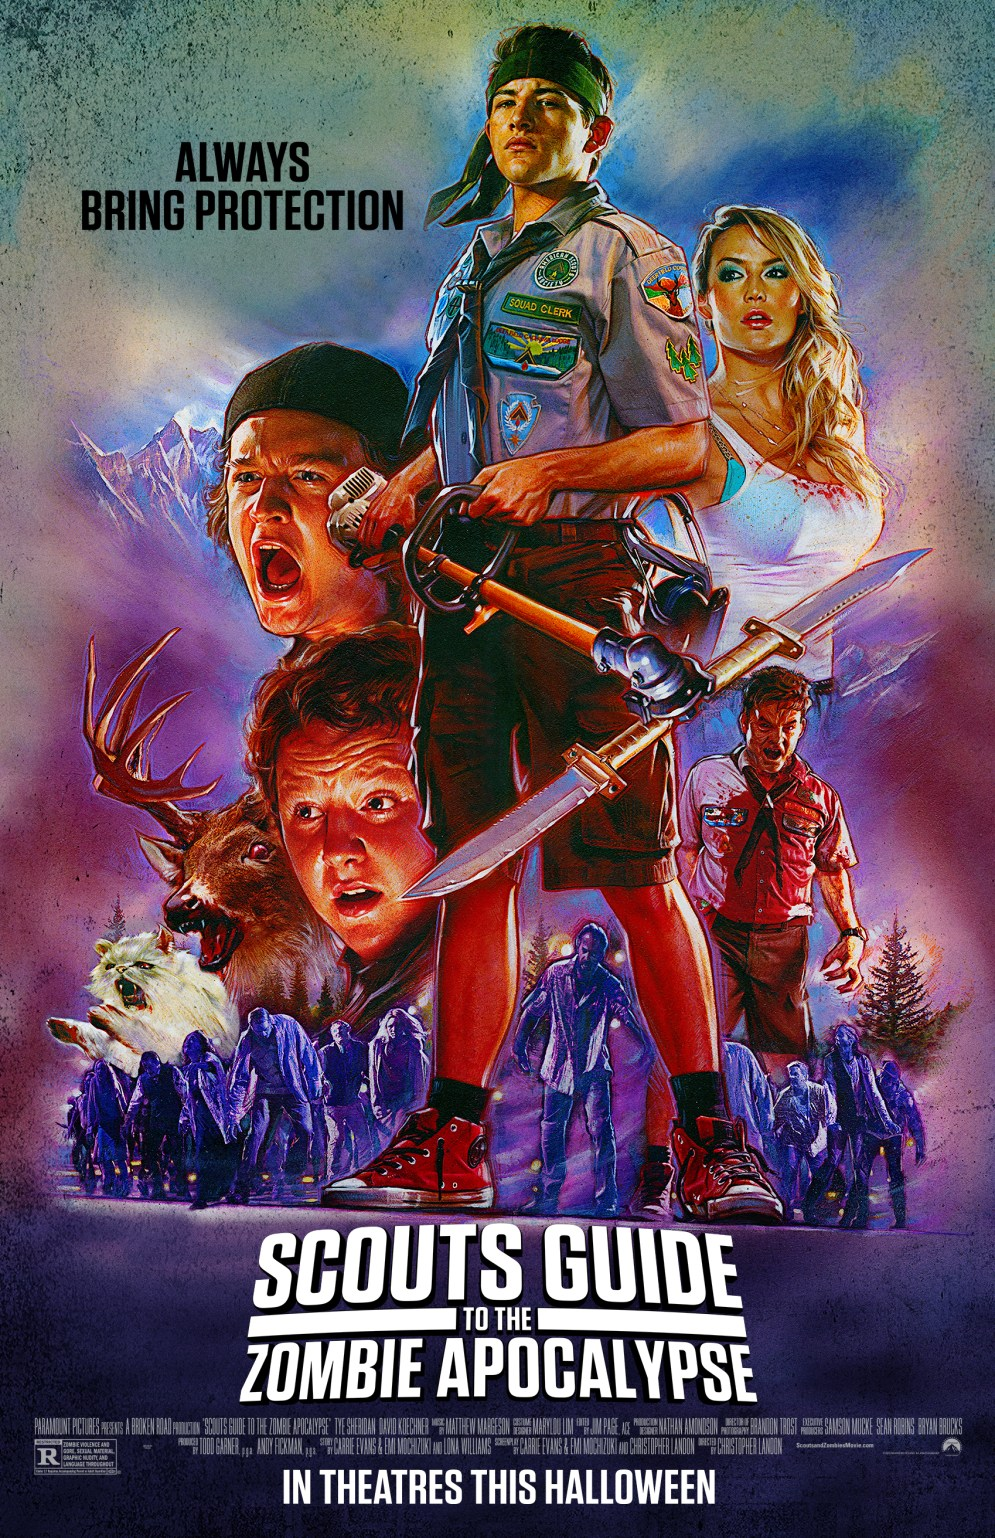 scouts guide to the zombie apocalypse' image gallery! - bloody